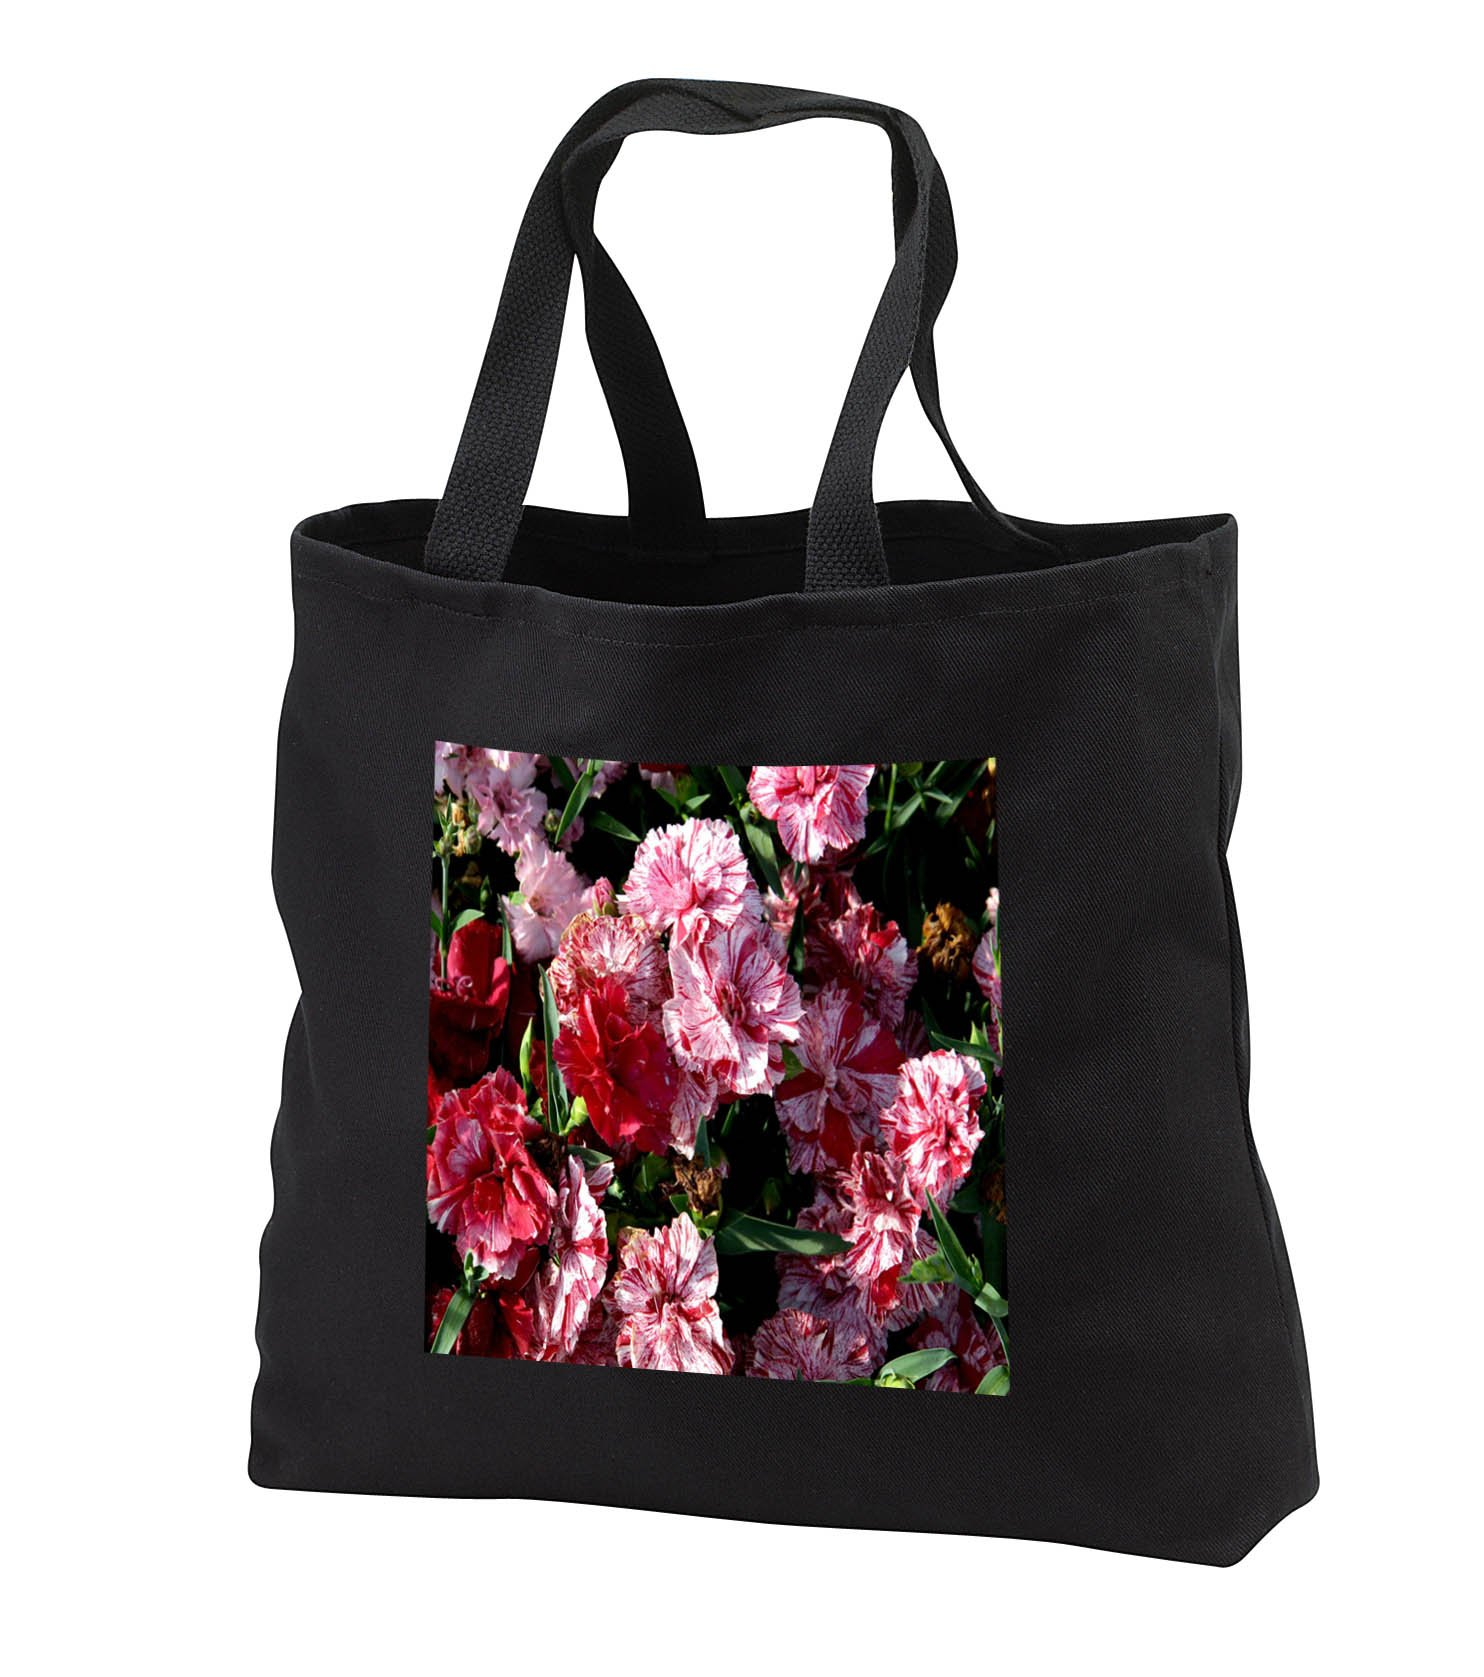 TDSwhite – Summer Seasonal Nature Photos - Floral Traditional Wedding Carnations - Tote Bags - Black Tote Bag 14w x 14h x 3d (tb_284614_1) by 3dRose (Image #1)